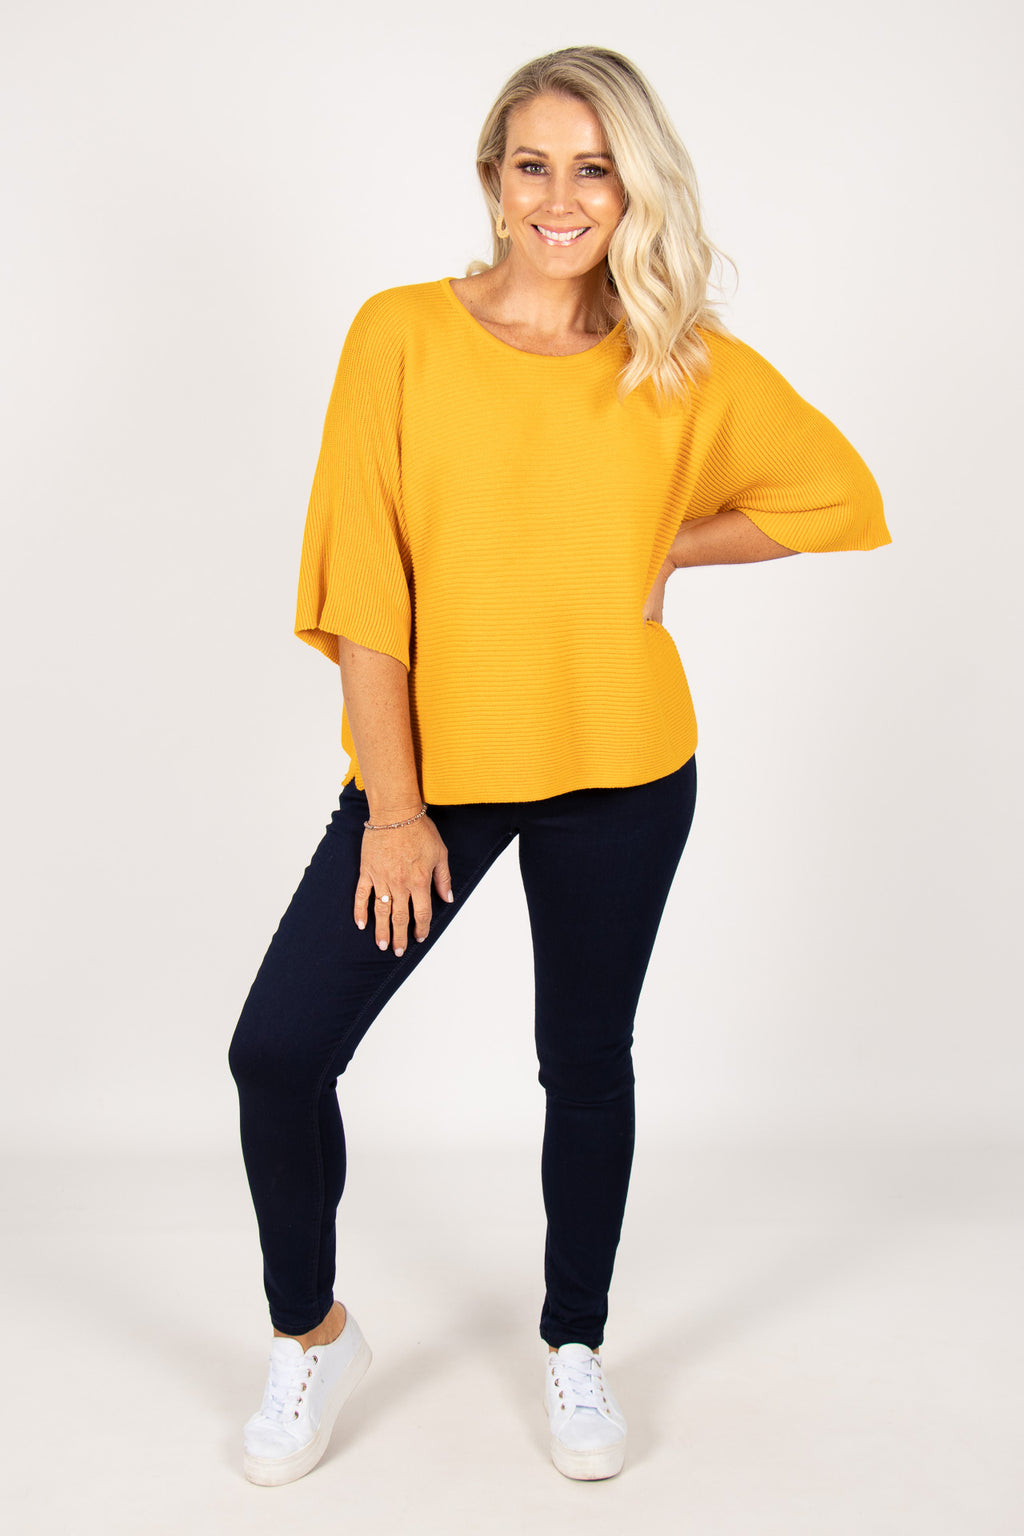 Emery Knit Top in Mustard